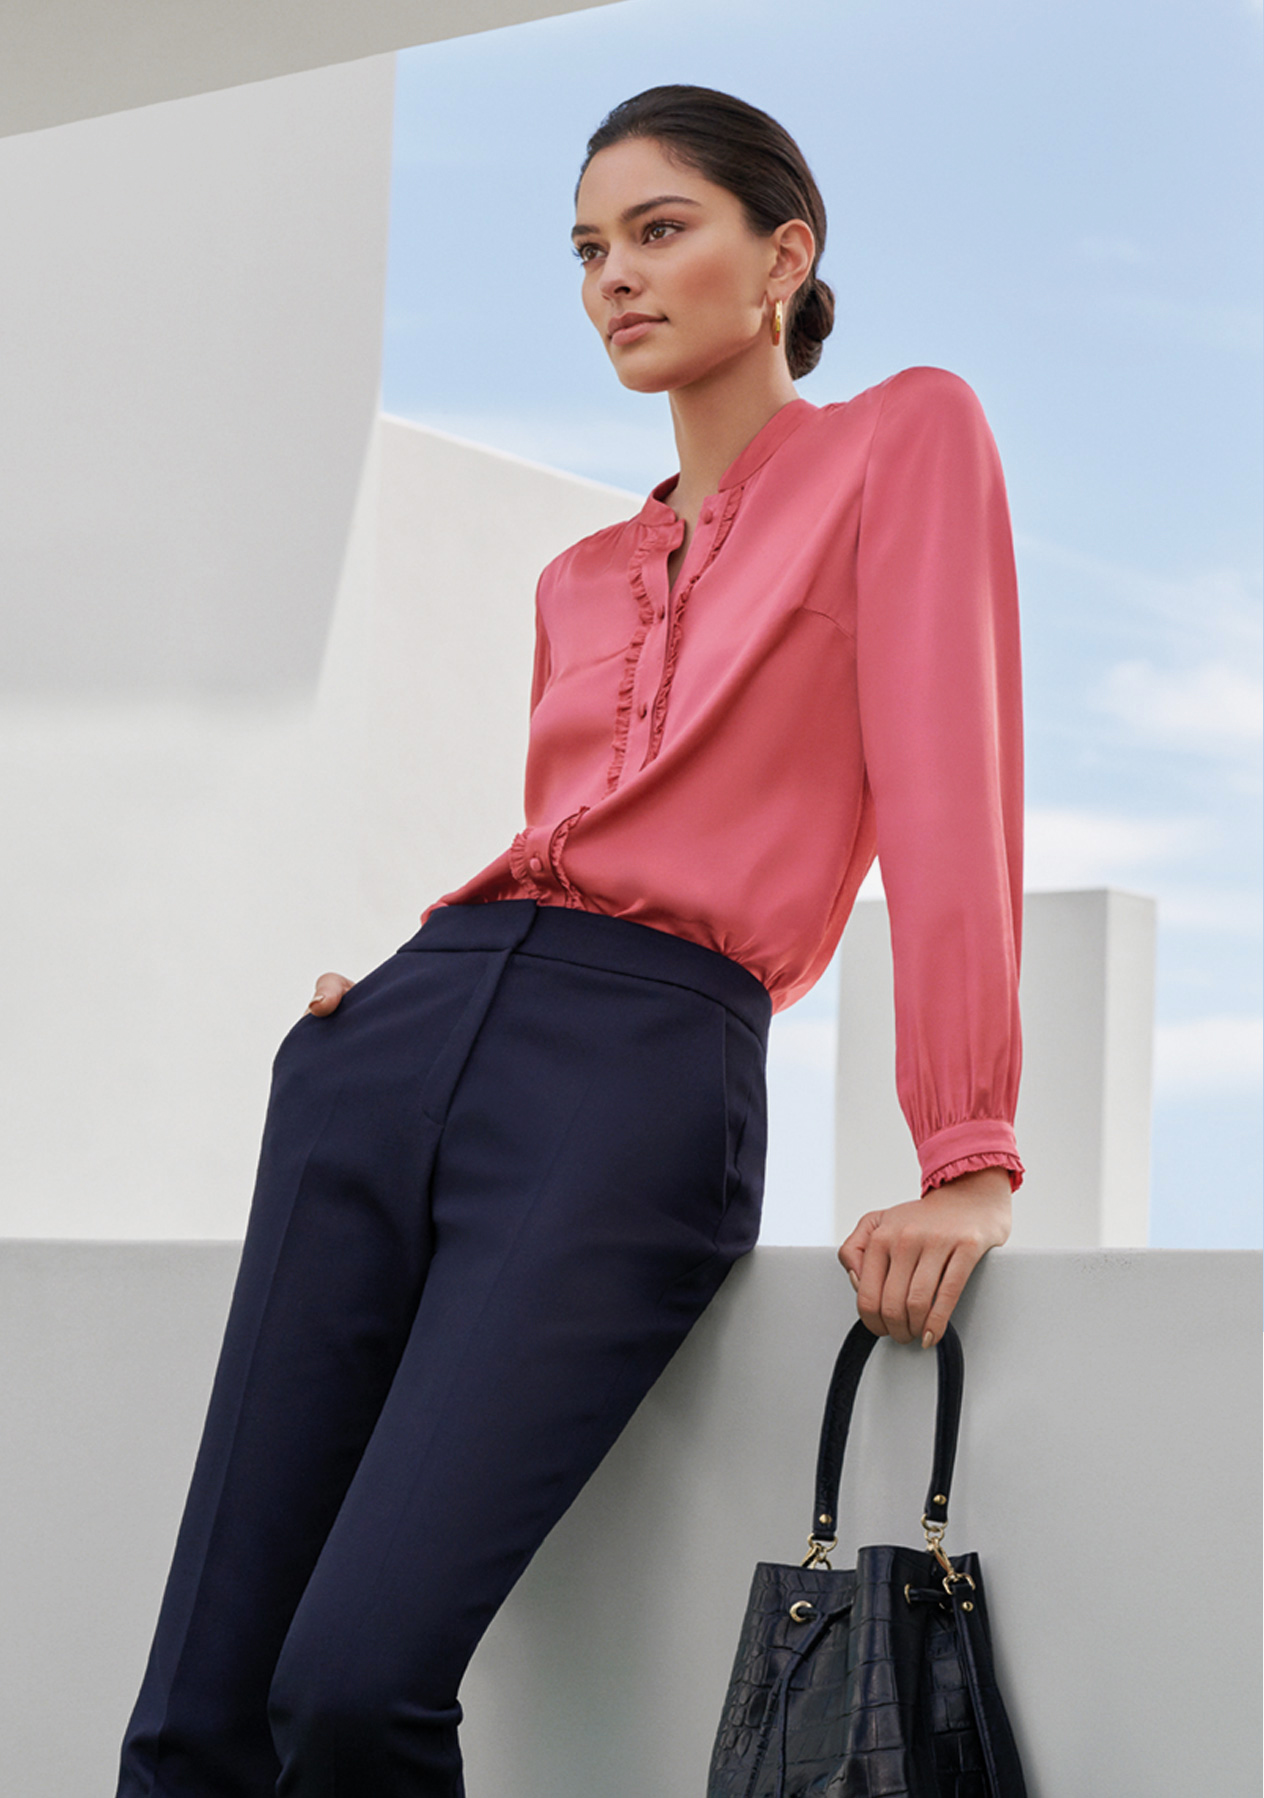 Satin shirt in pink worn with navy blue tailored trousers and a black leather bucket bag, by Hobbs.